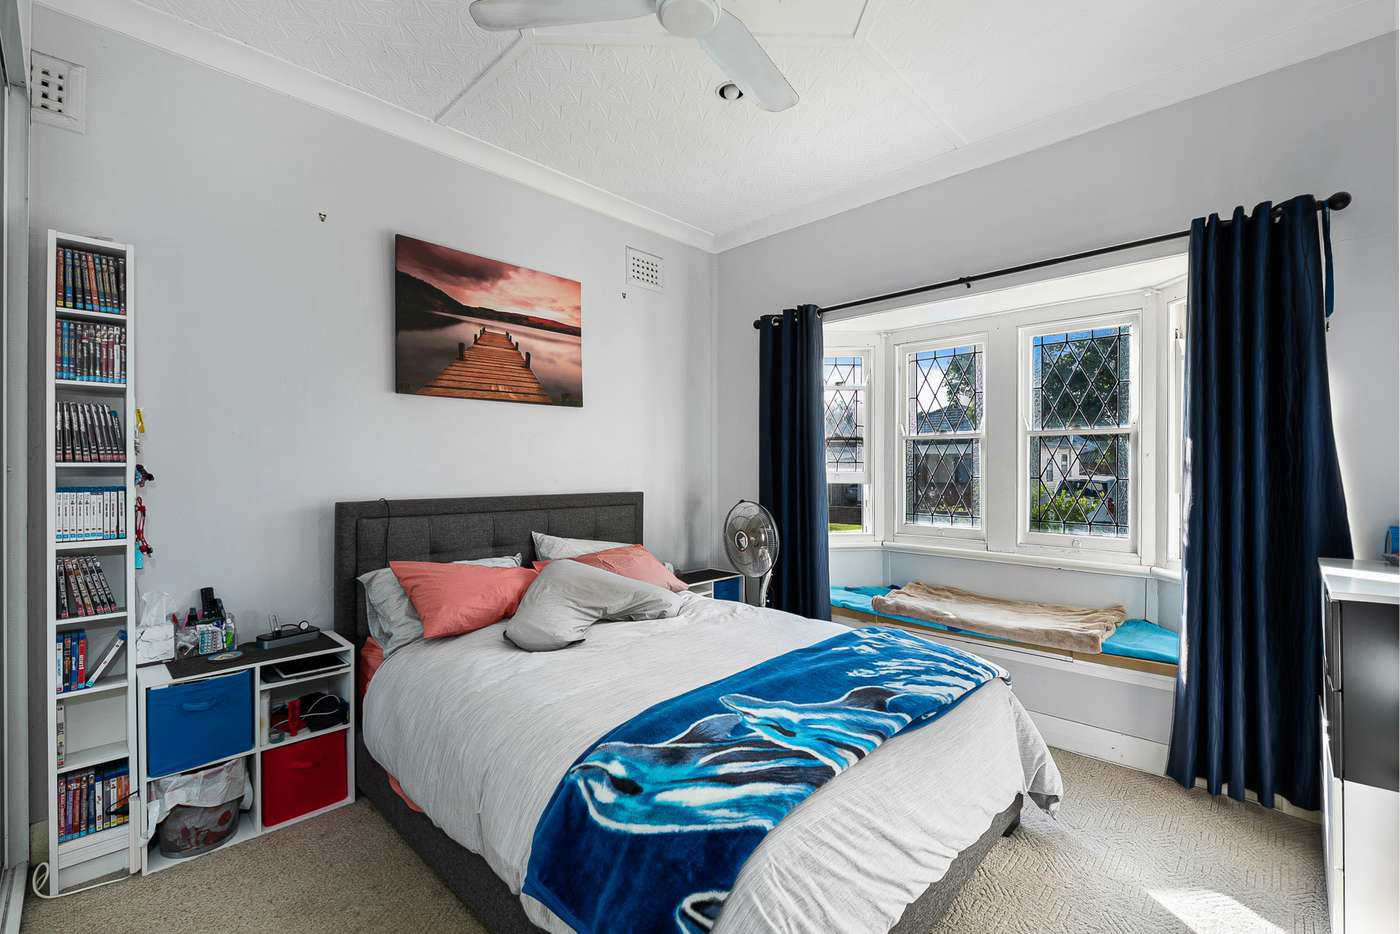 Sixth view of Homely house listing, 53 Jean Street, New Lambton NSW 2305